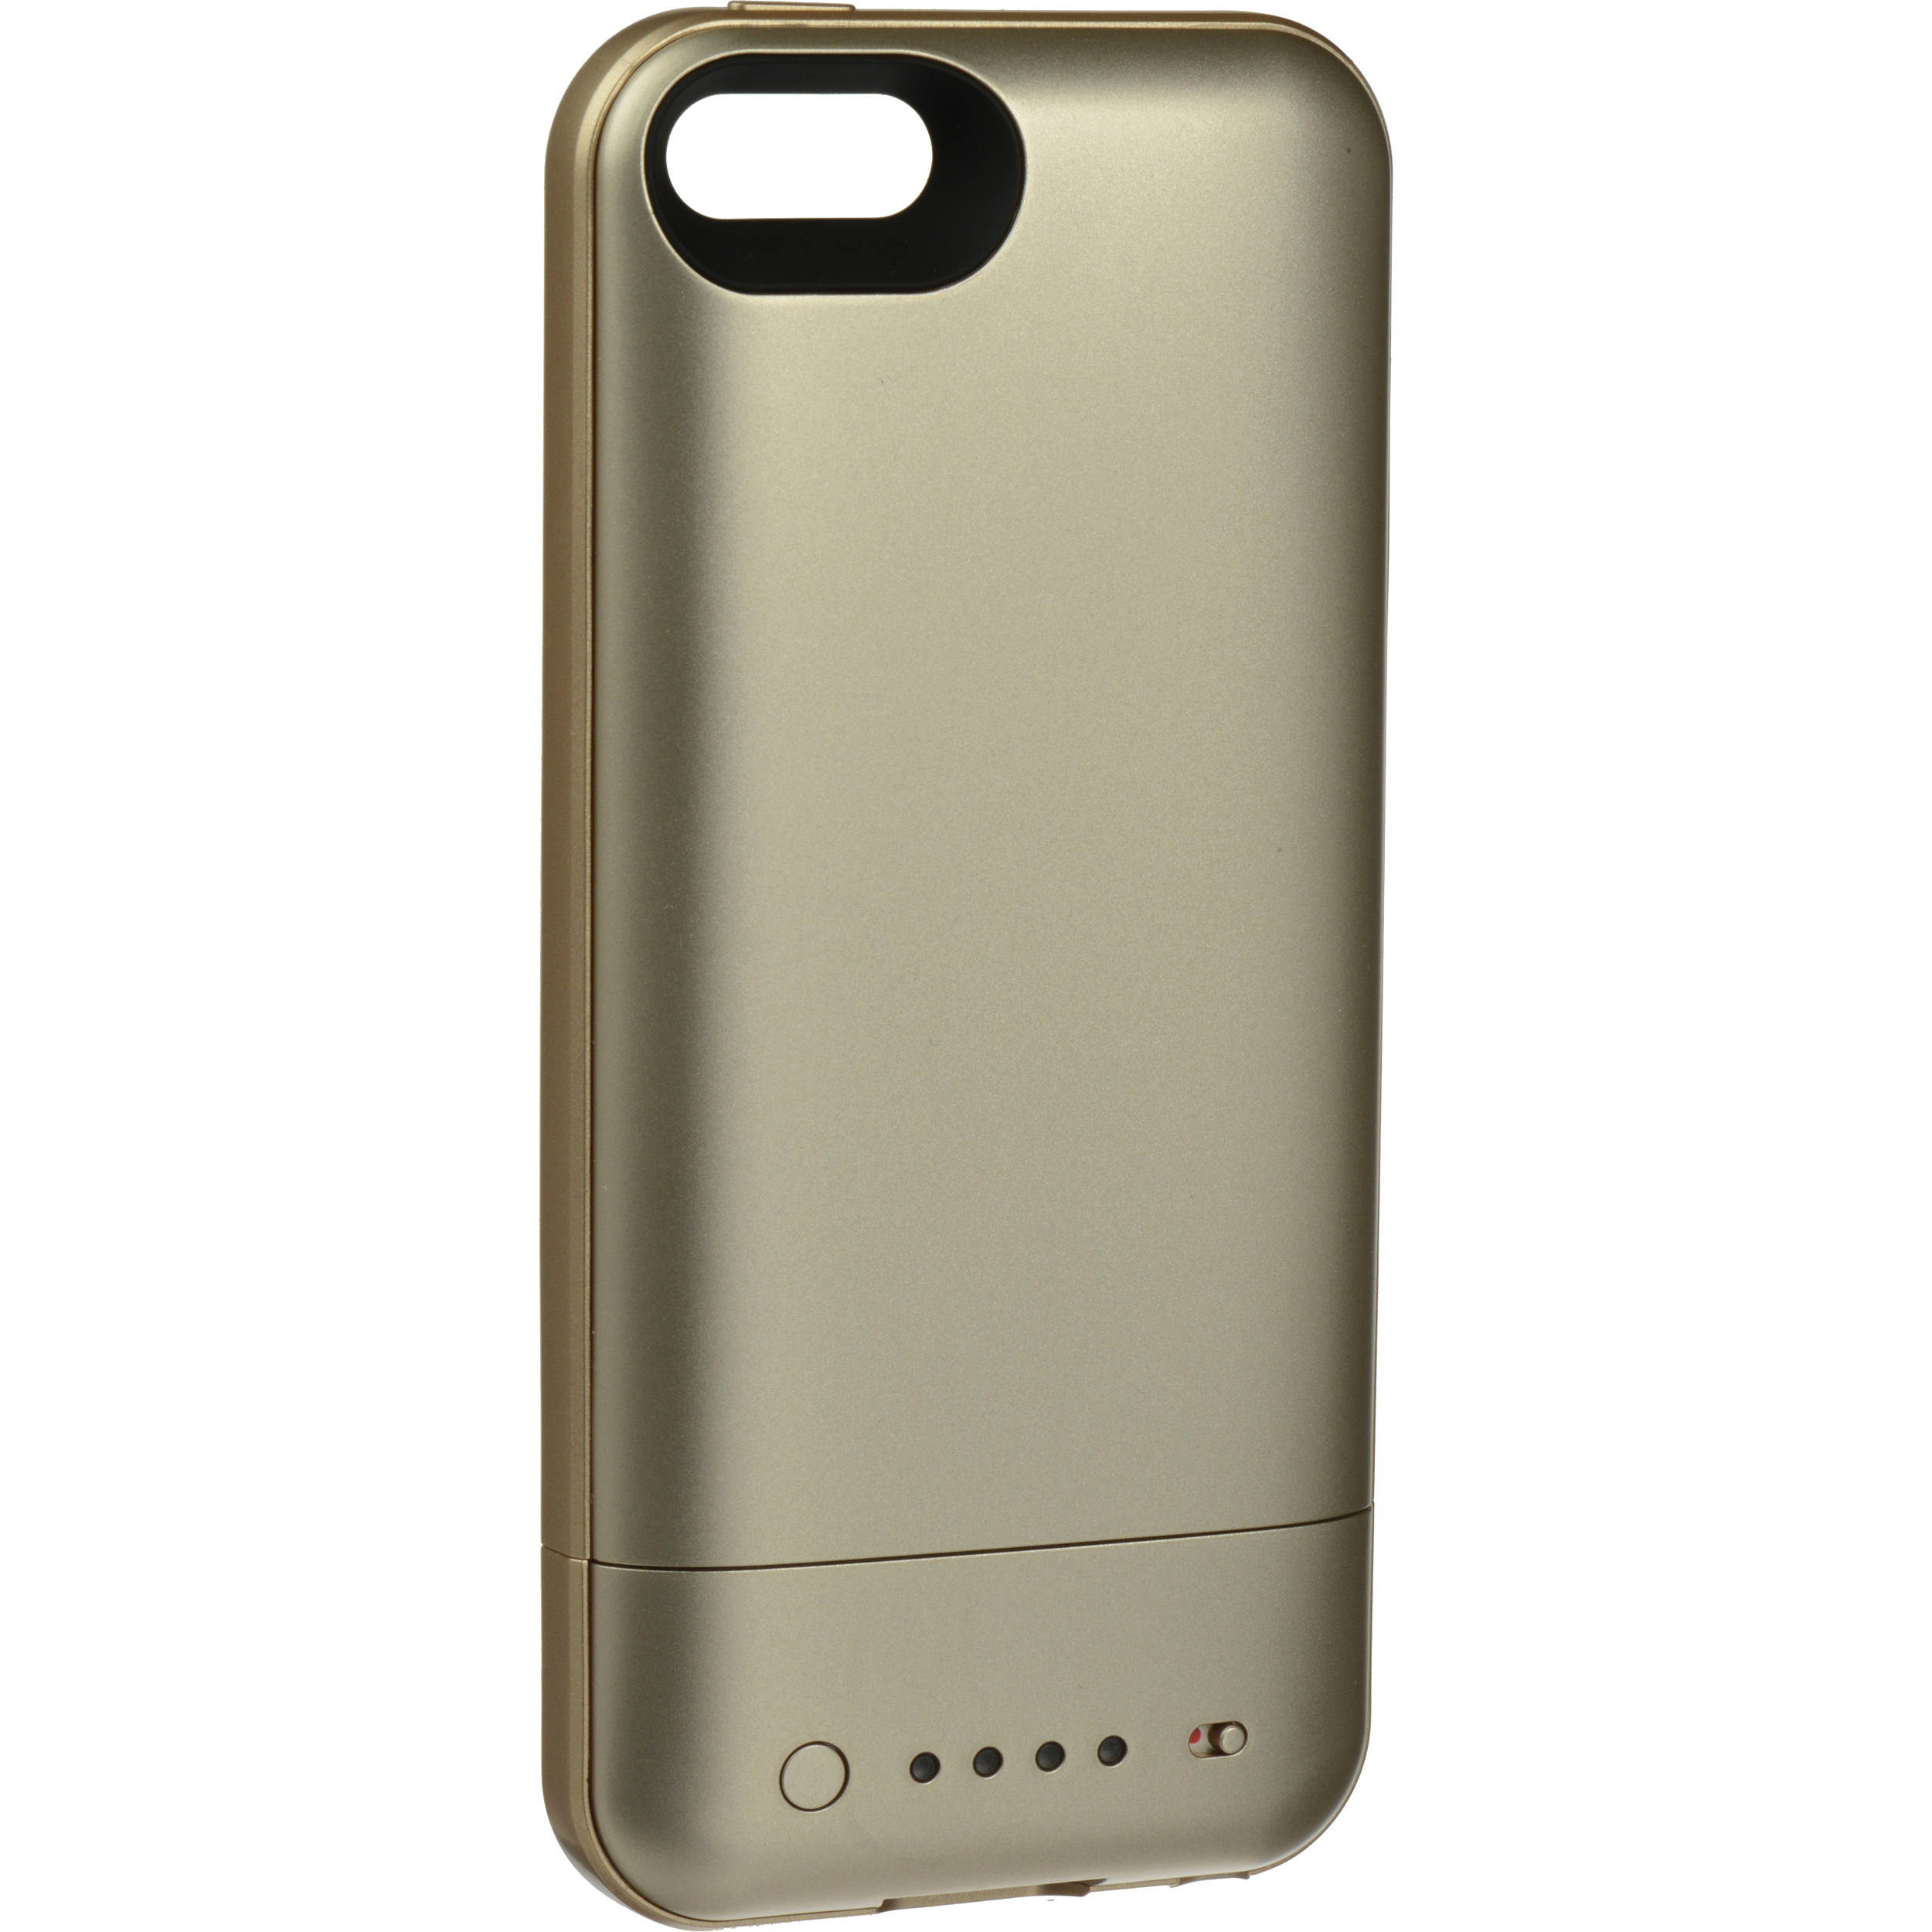 official photos 788e8 6bc3f mophie juice pack air for iPhone 5/5s/SE (Gold)